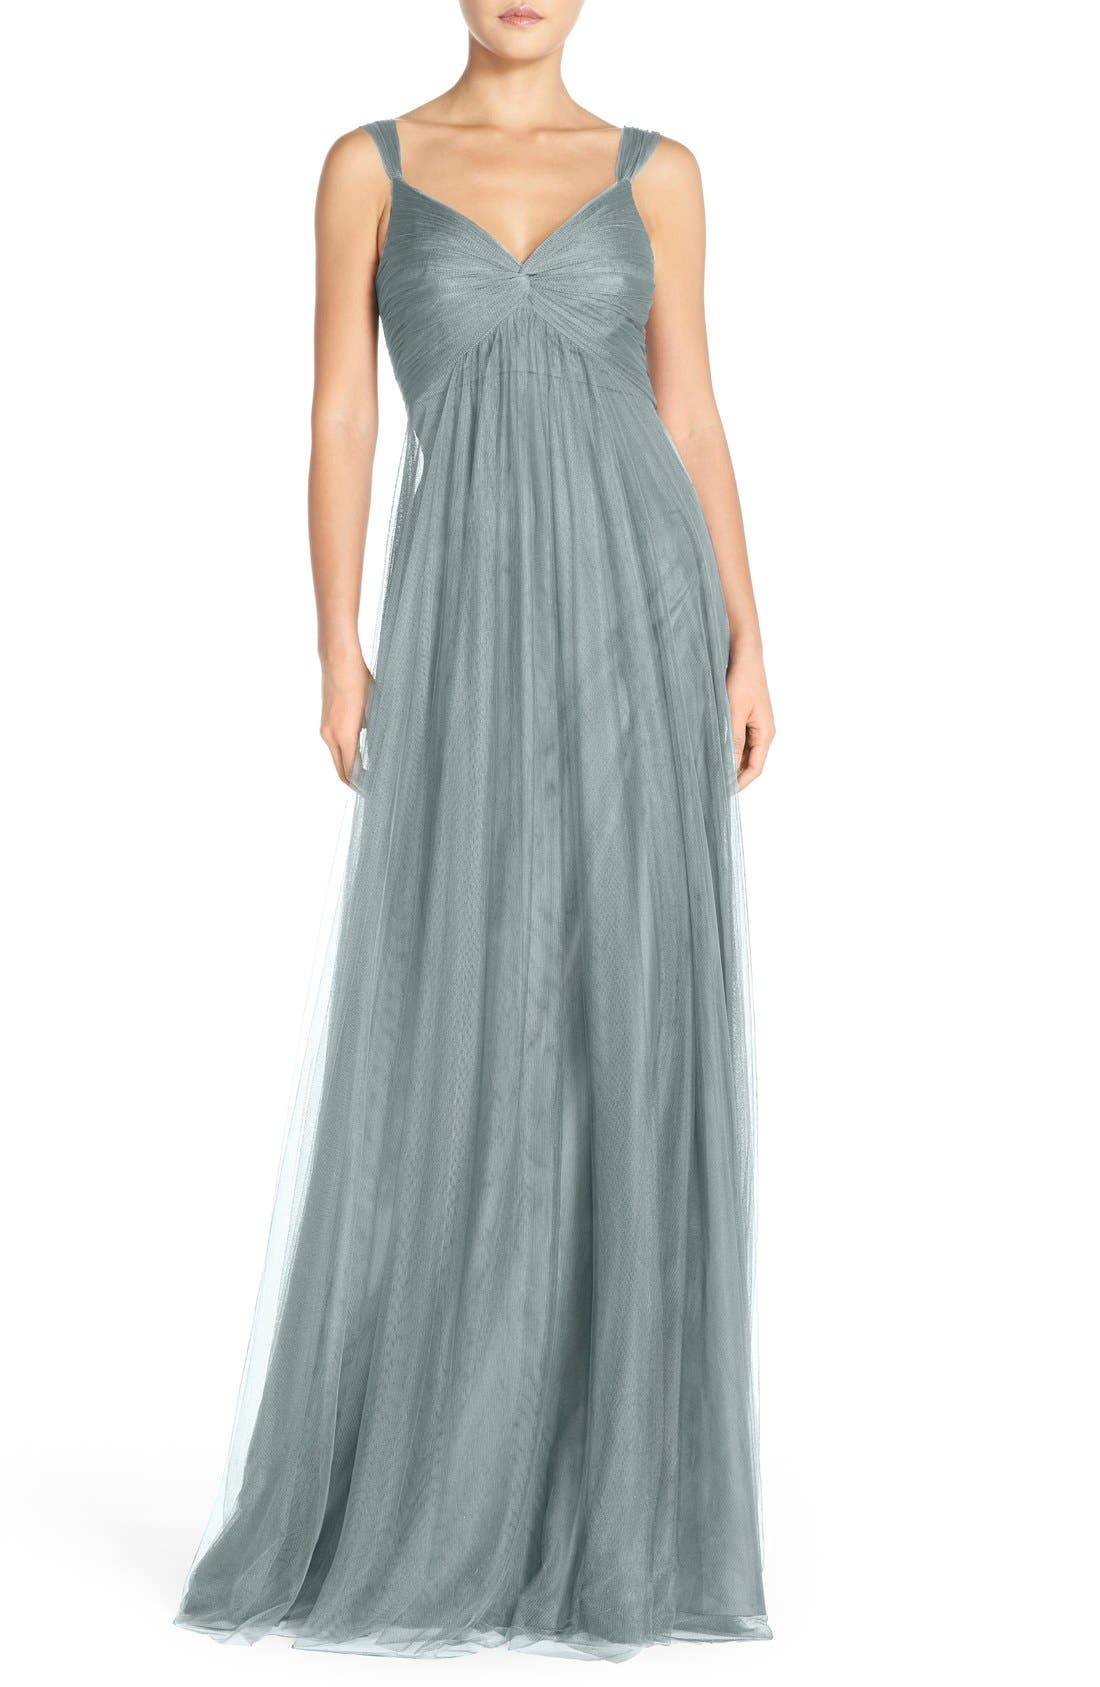 MONIQUE LHUILLIER BRIDESMAIDS Monique Lhuillier Empire Waist